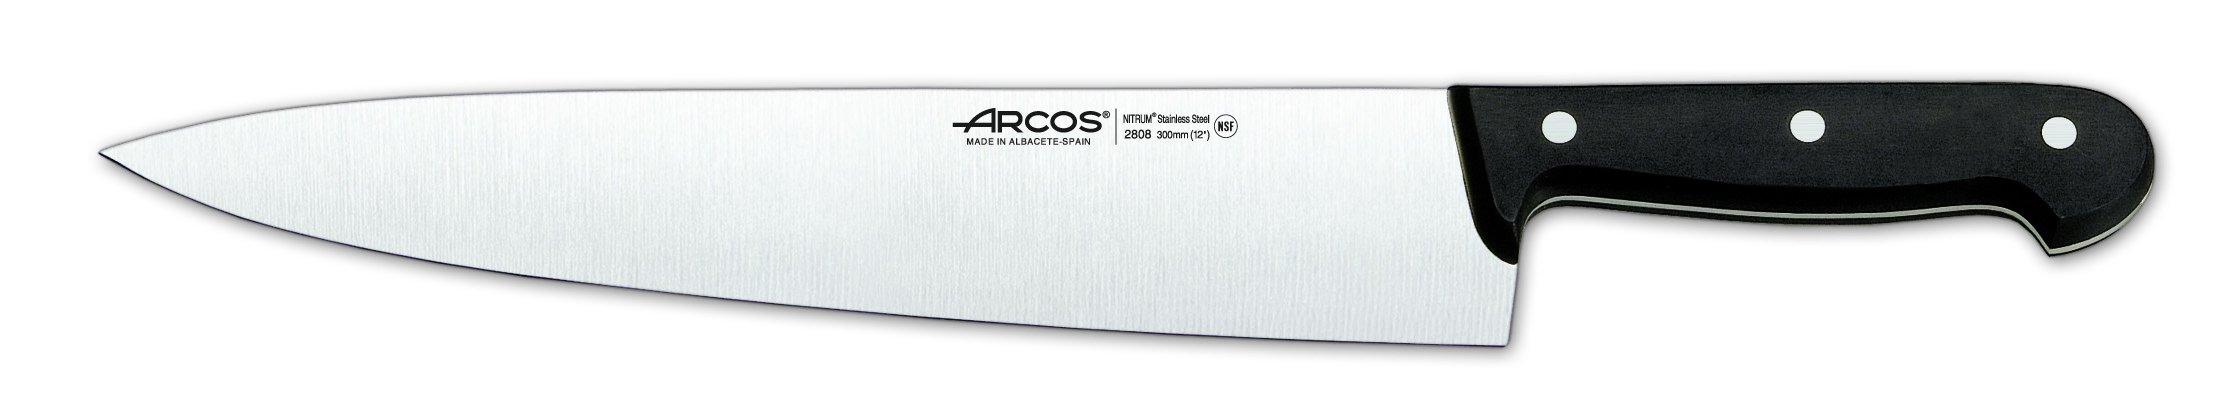 Arcos 12-Inch 300 mm Universal Chef's Knife by ARCOS (Image #1)